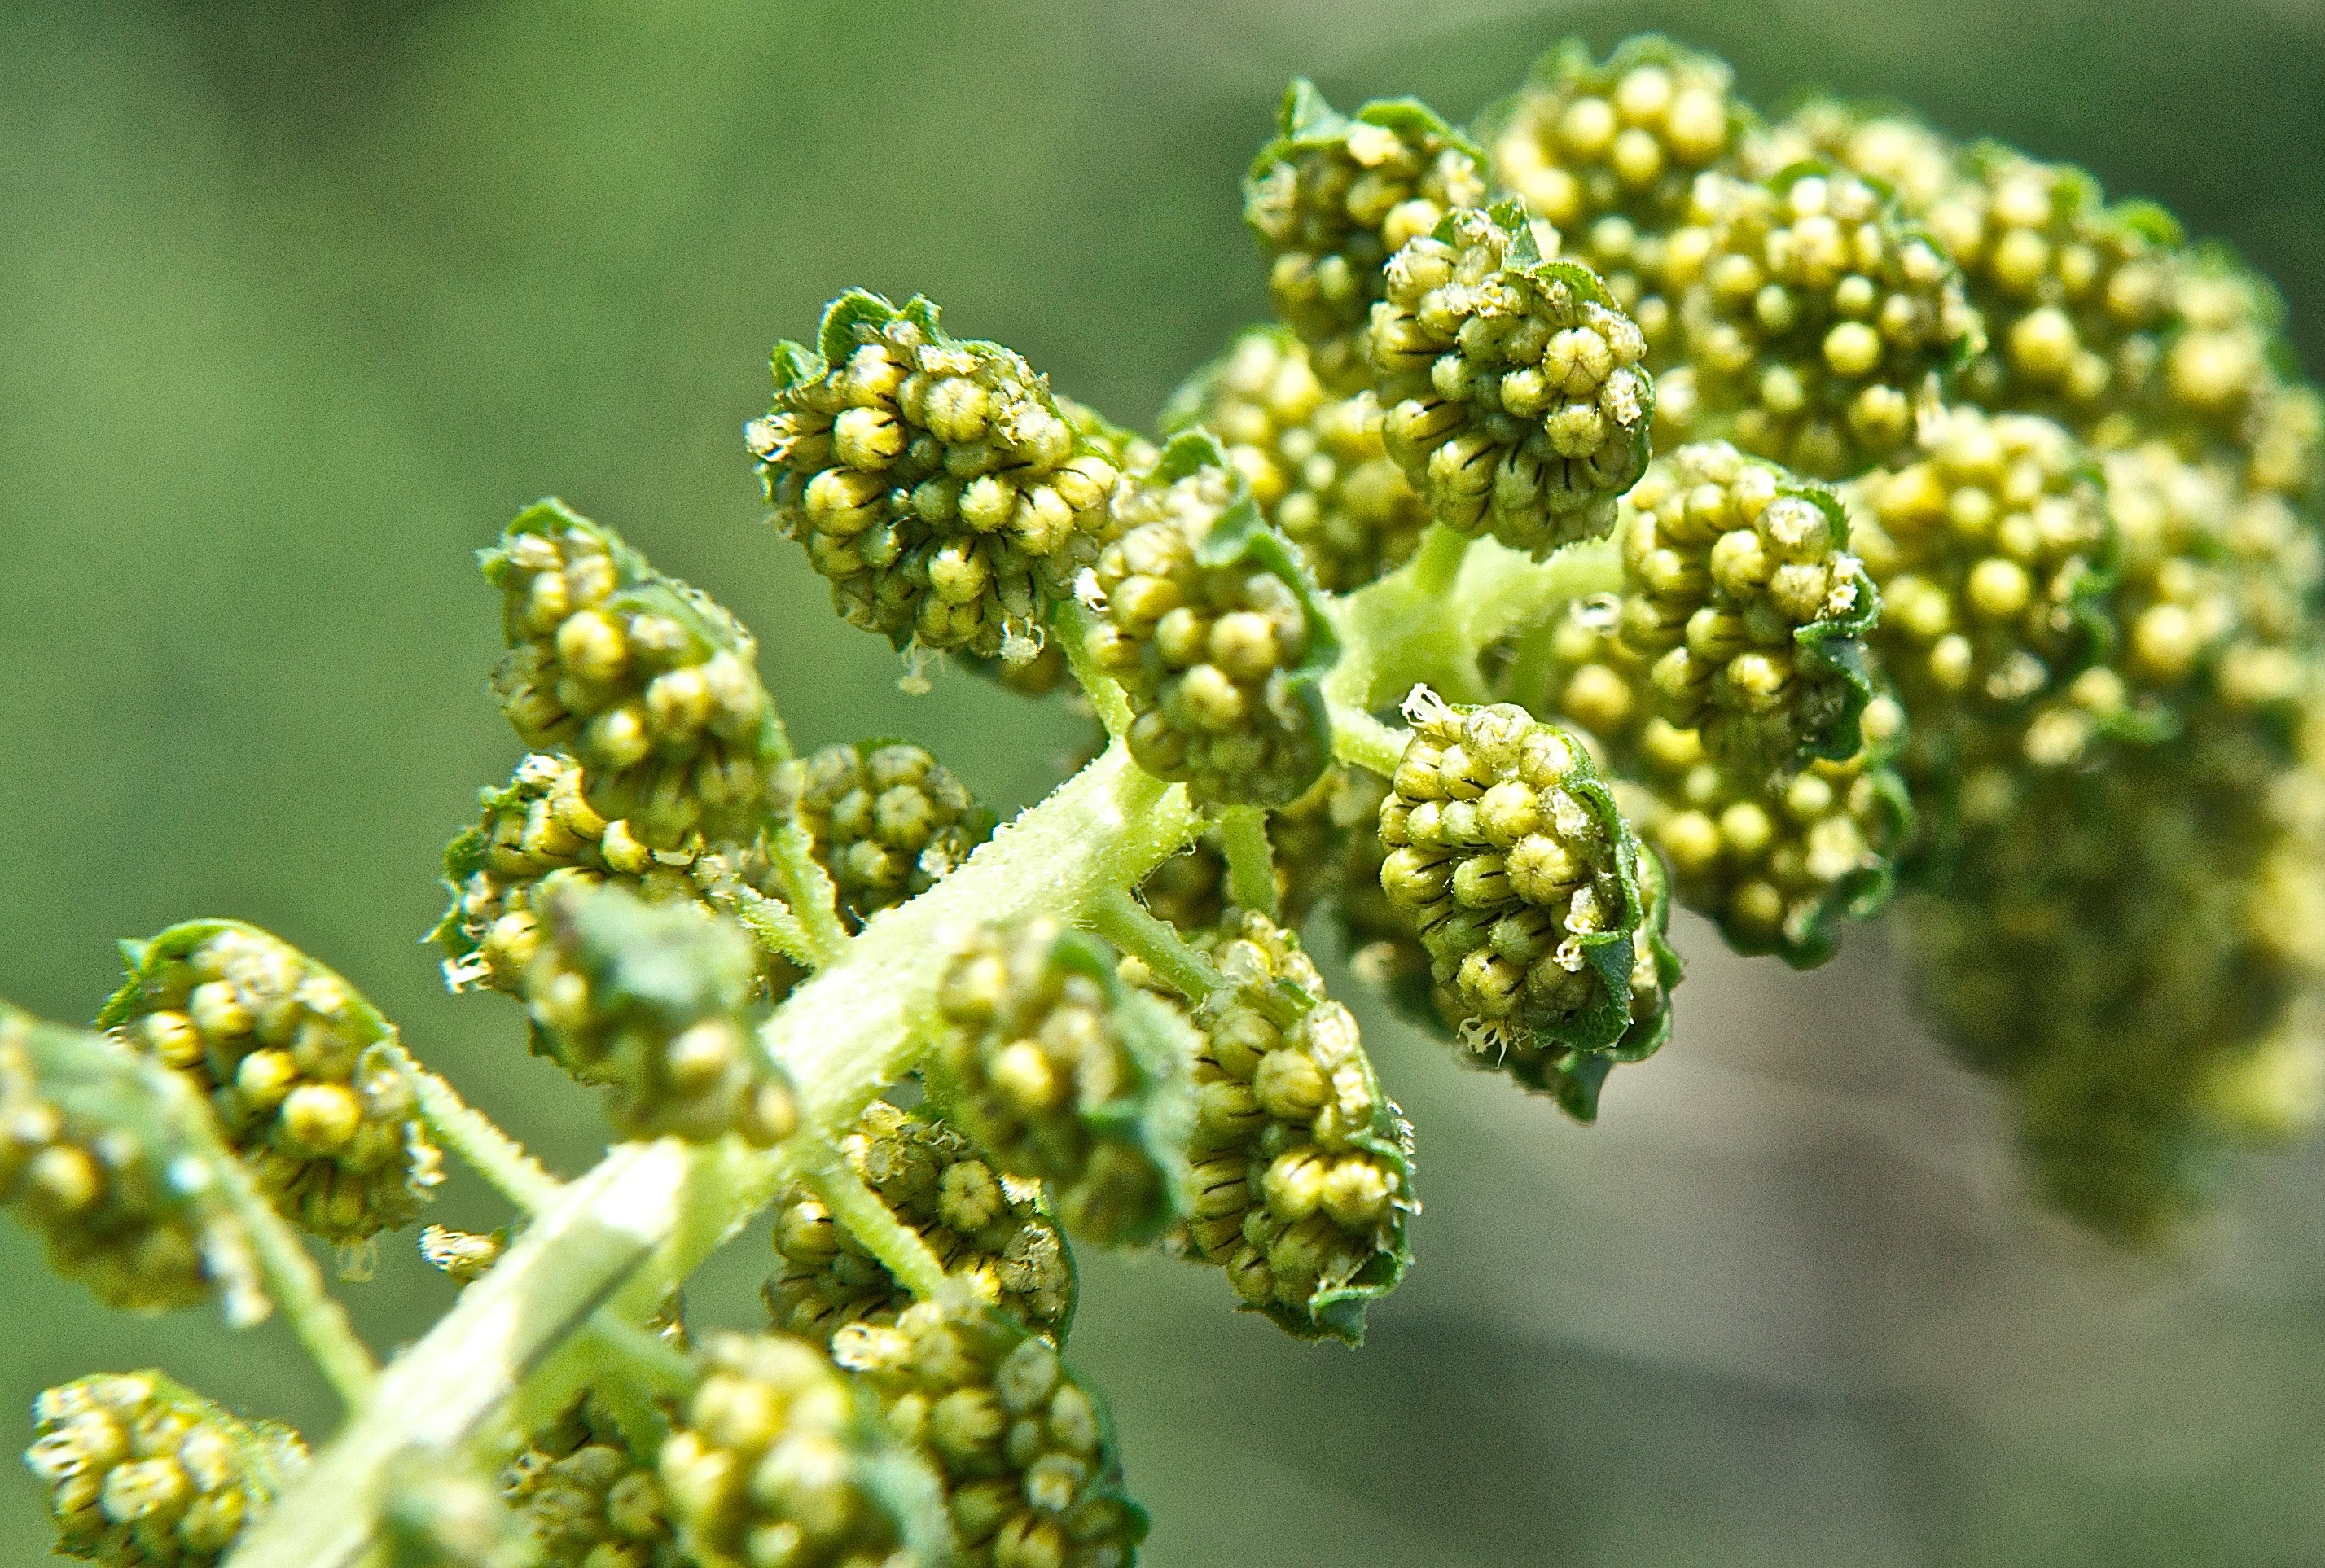 Giant Ragweed (Ambrosia trifida) Male Blooms